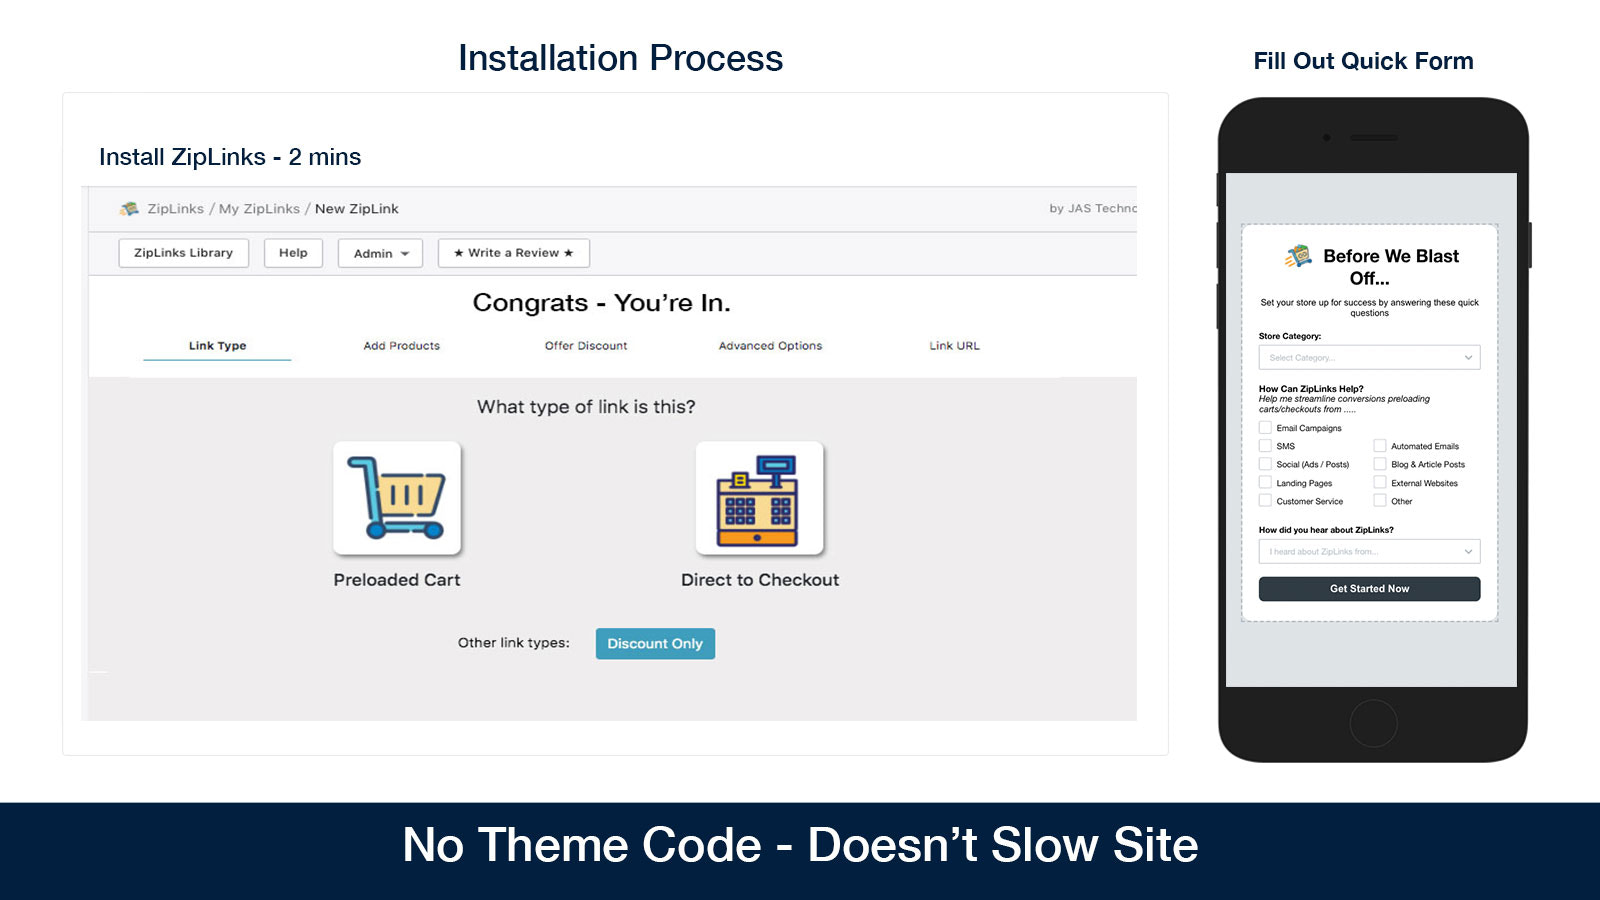 one minute install - no code needed wont slow down your site